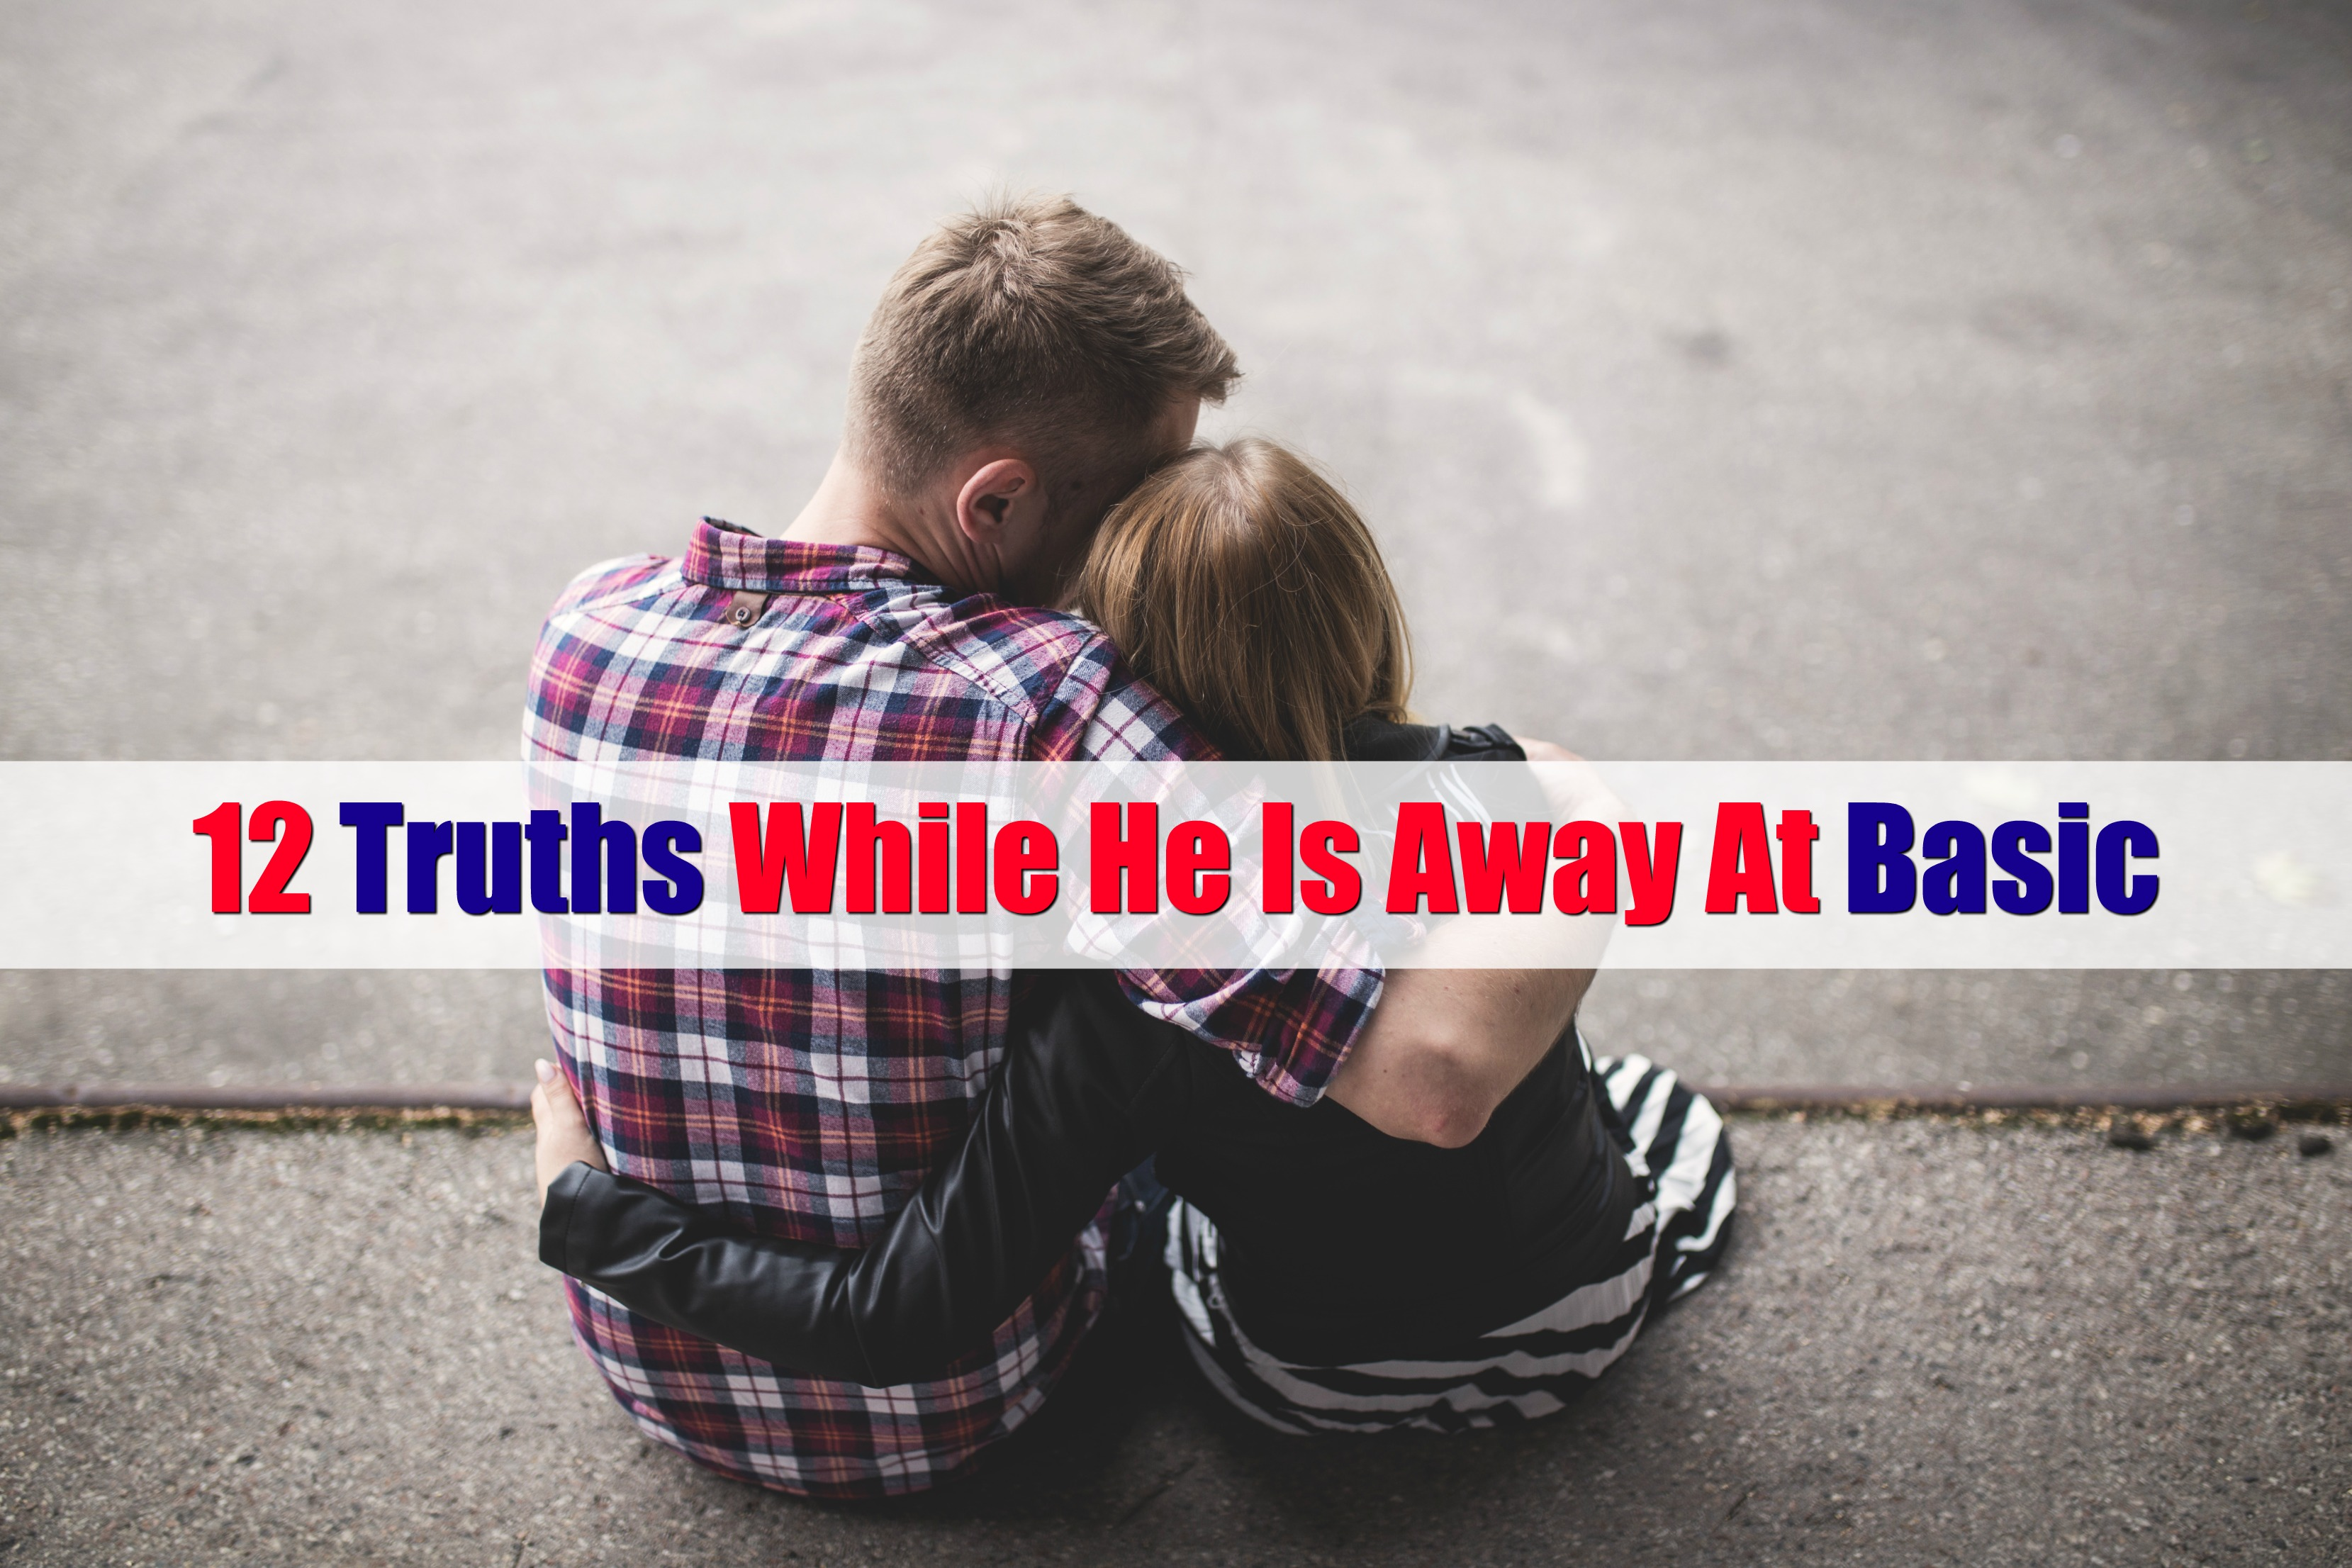 12 Truths While He Is Away at Basic